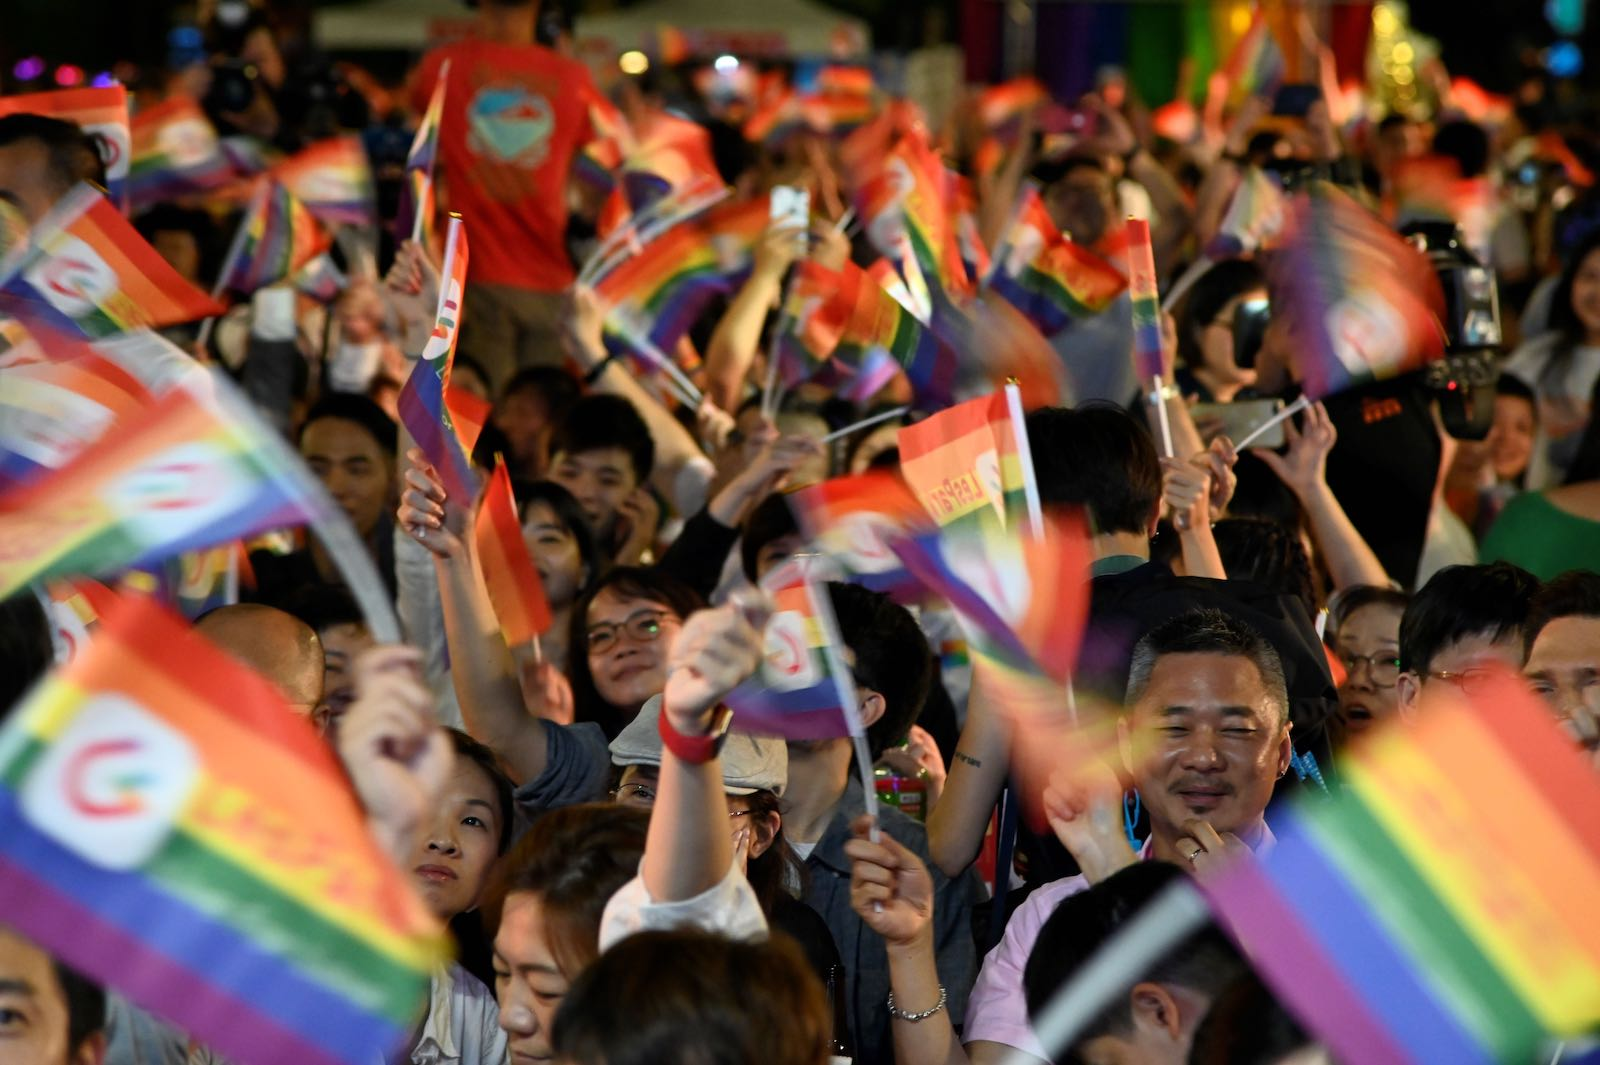 Rainbow flags during a mass wedding banquet for gay couples in front of the Presidential Palace in Taipei on 25 May (Photo: Sam Yeh via Getty)